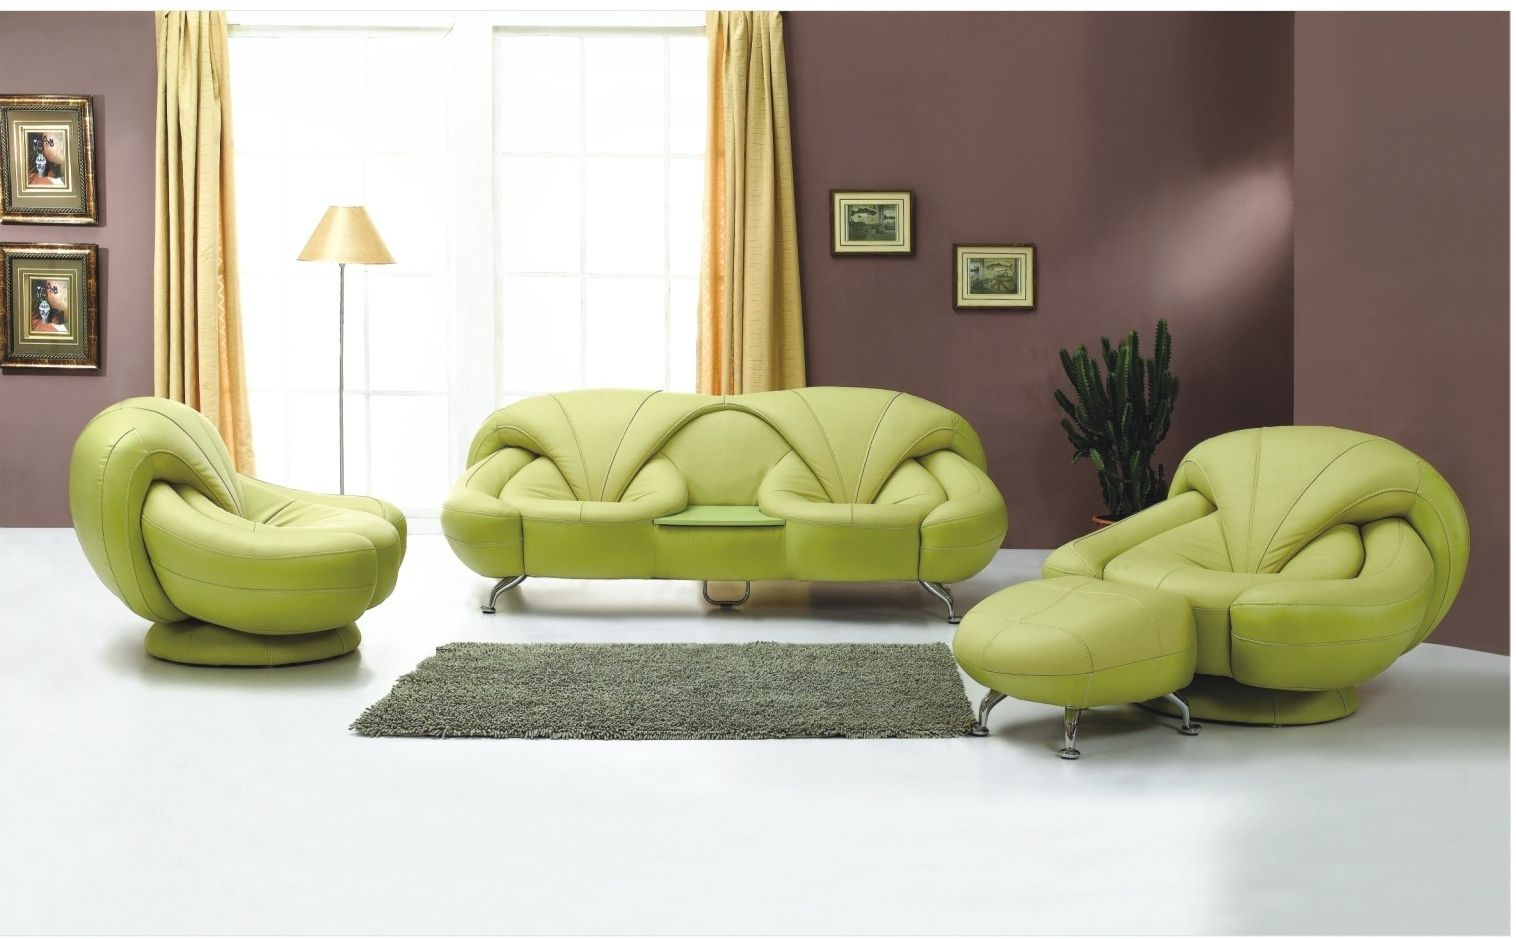 Extra Rs 400 Off On Rs 2500 Above At Favfurnish Furniture Design Living Room Unique Living Room Furniture Modern Furniture Living Room